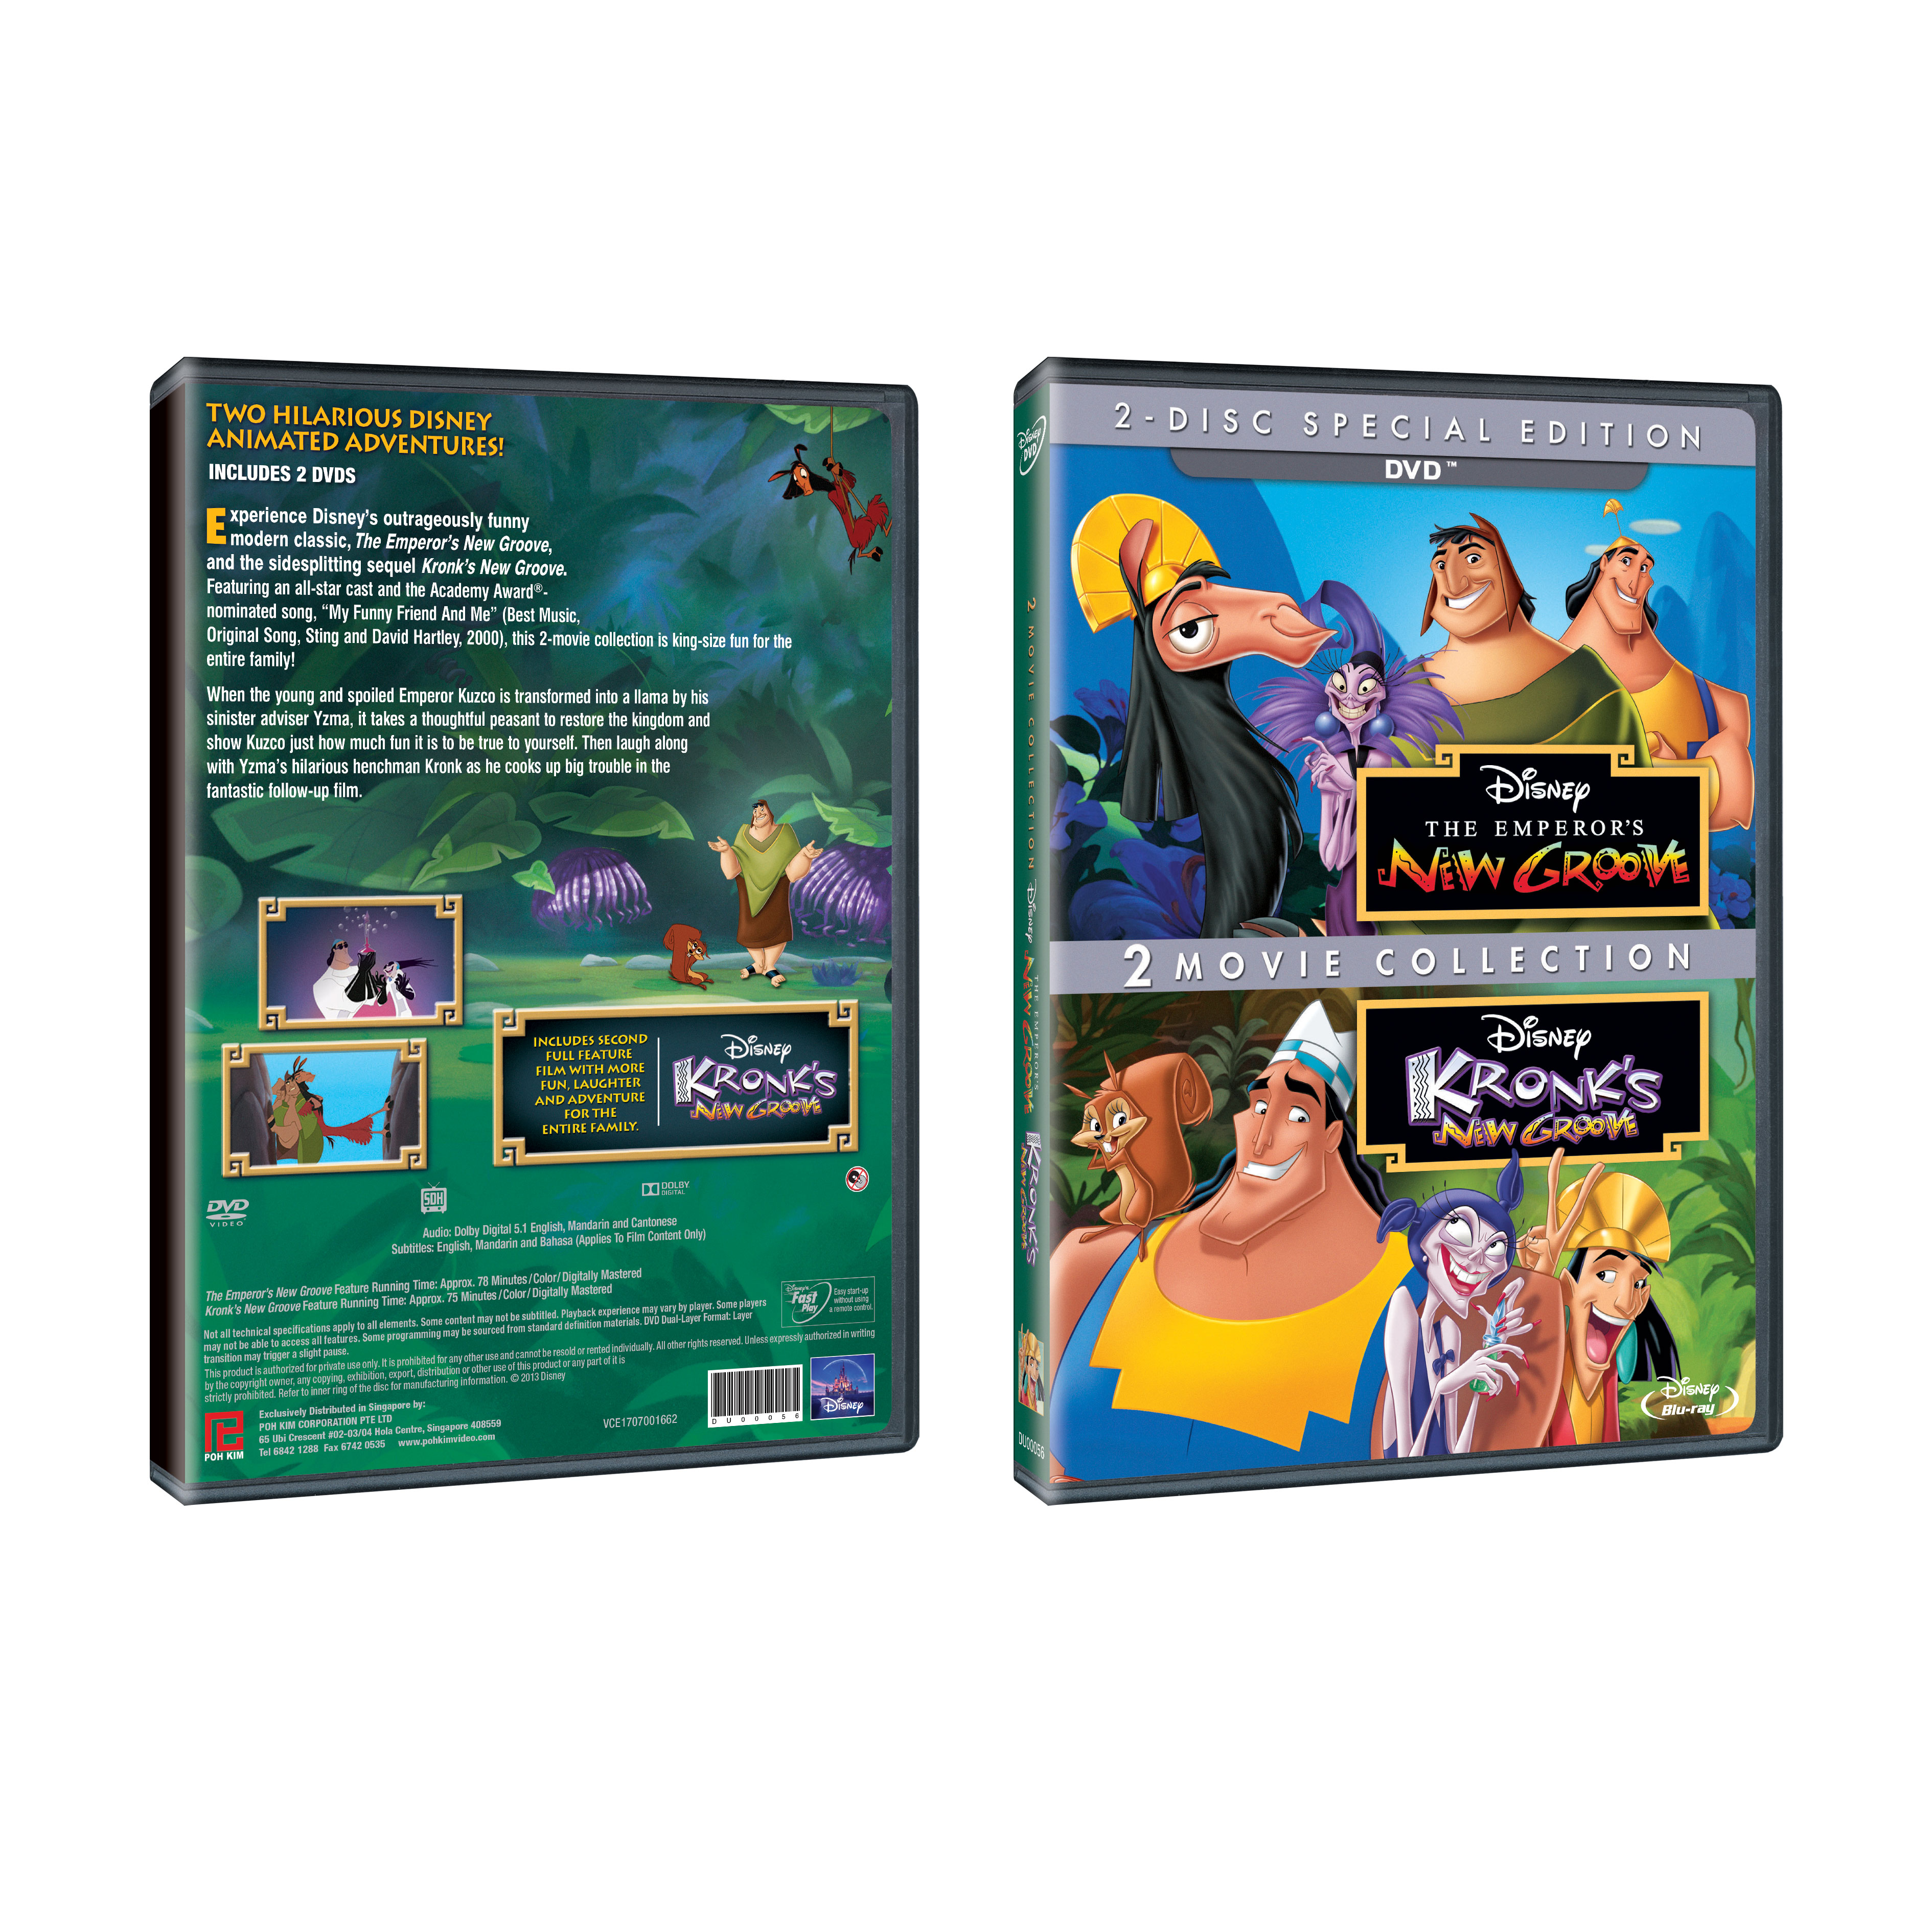 The Emperor's New Groove: 2 Movie Collection (DVD)